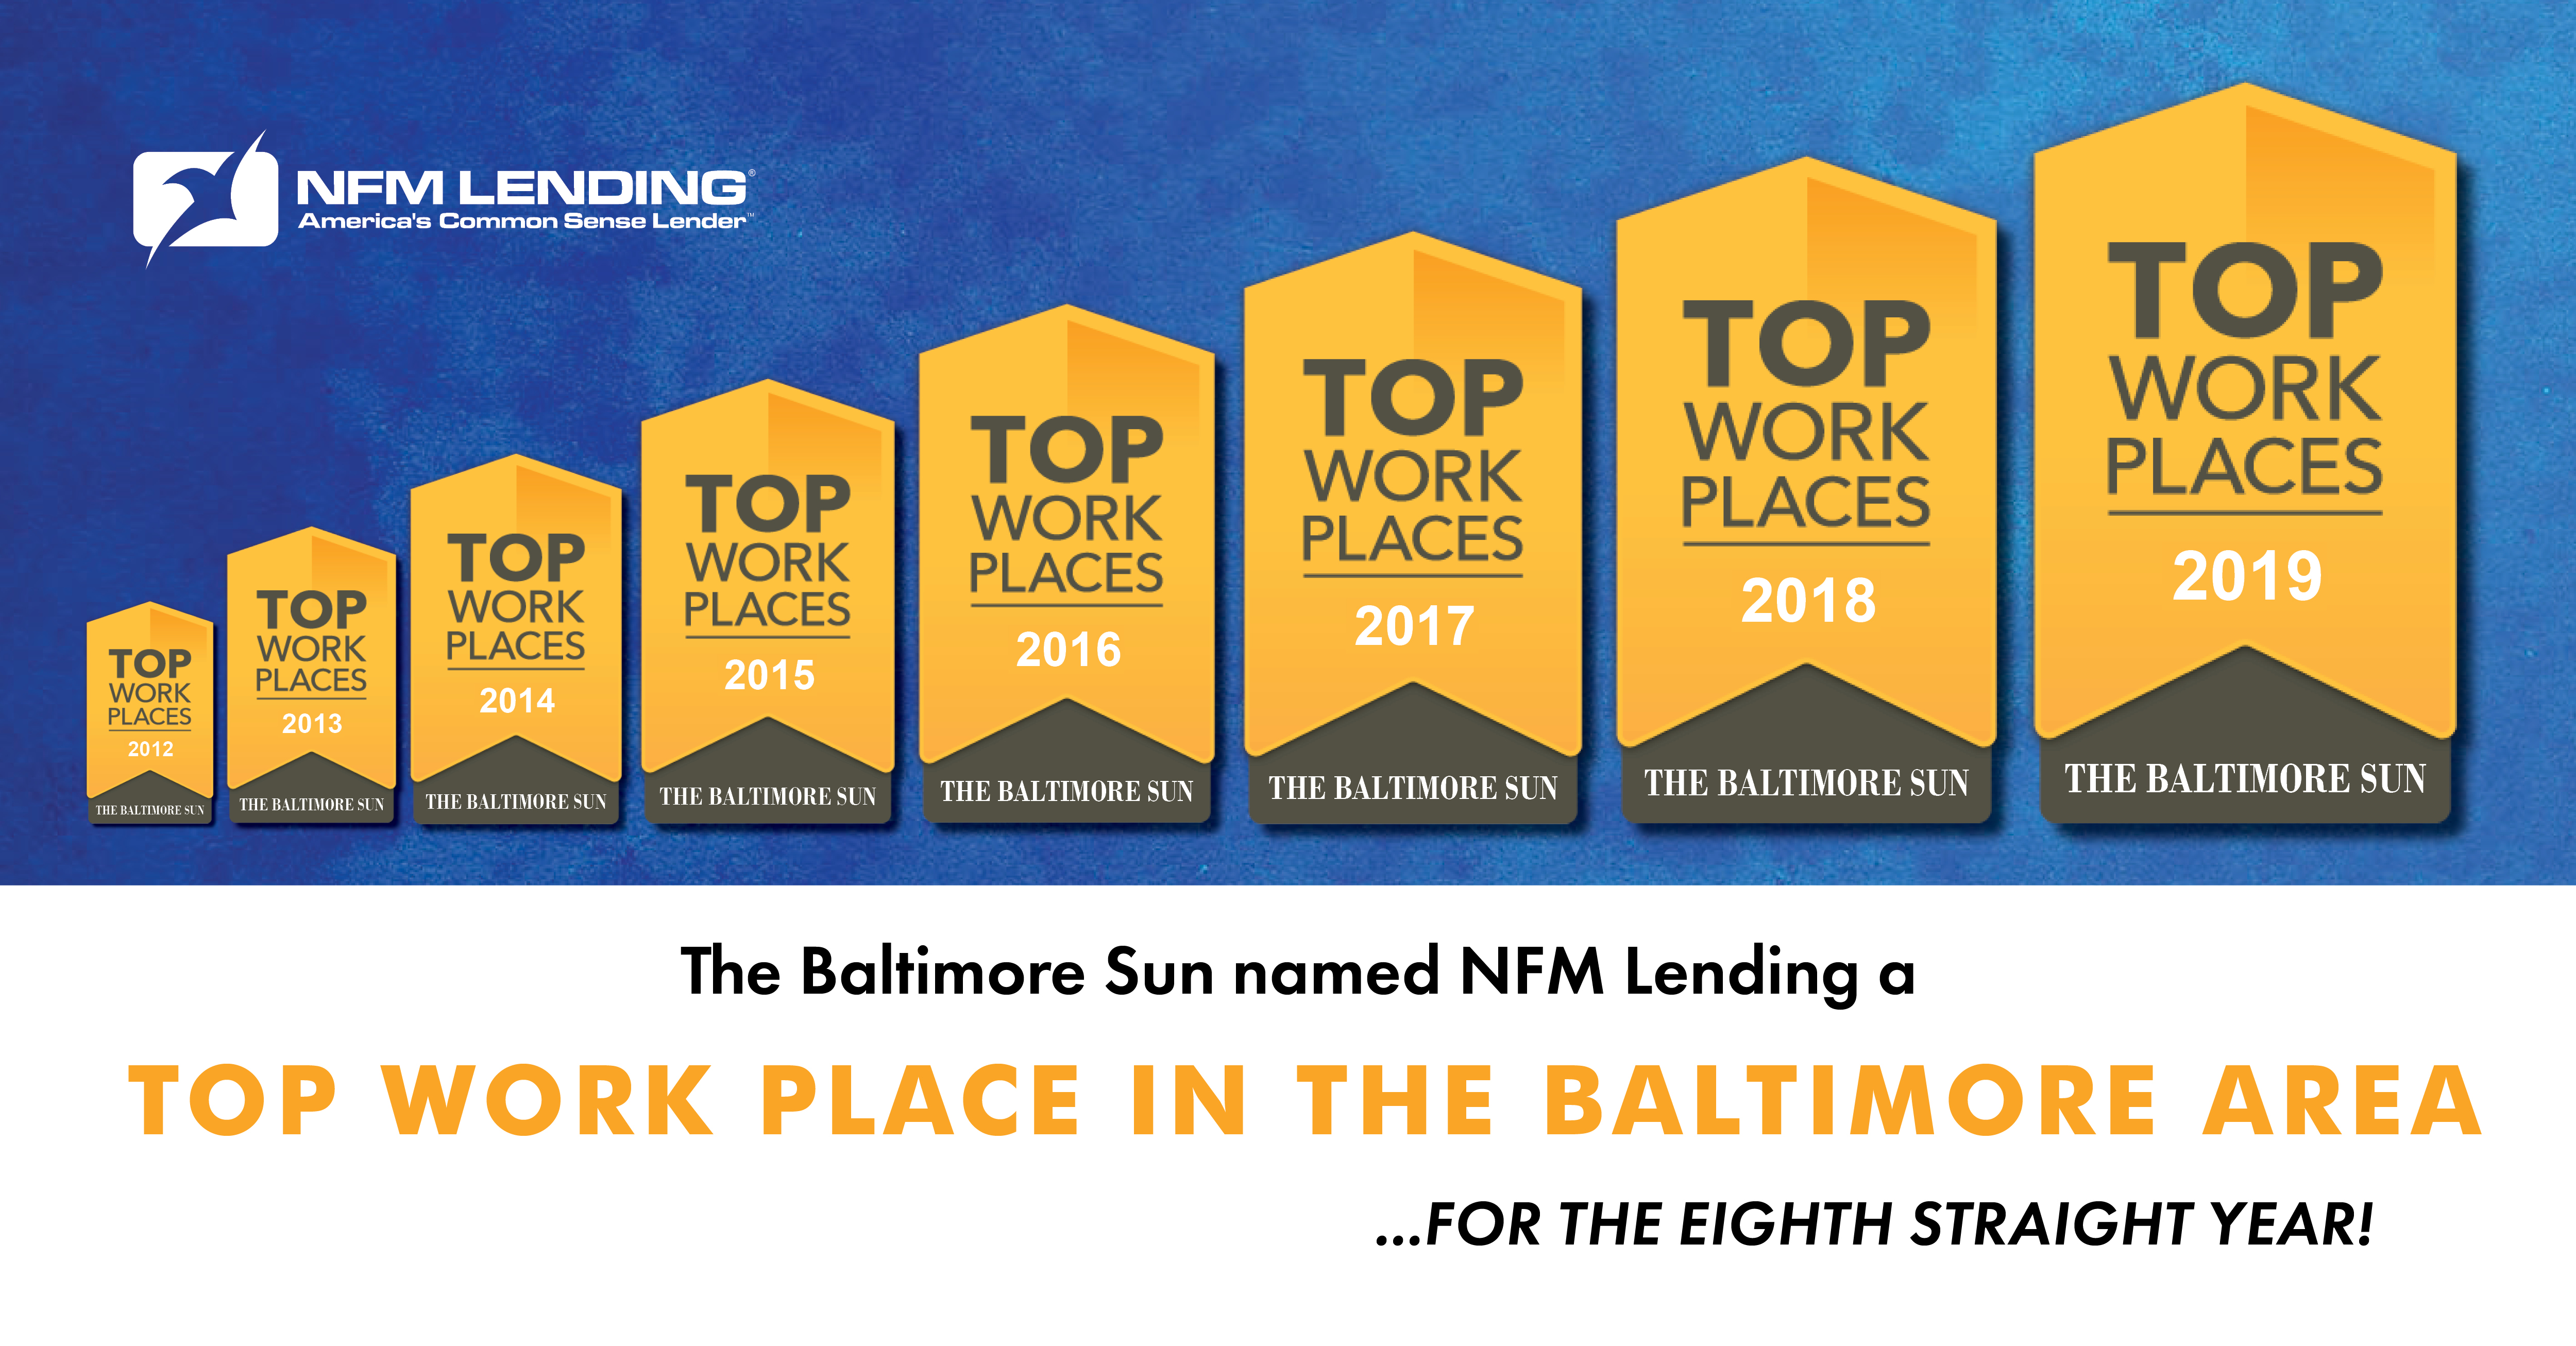 Baltimore Sun Top Workplaces 2019